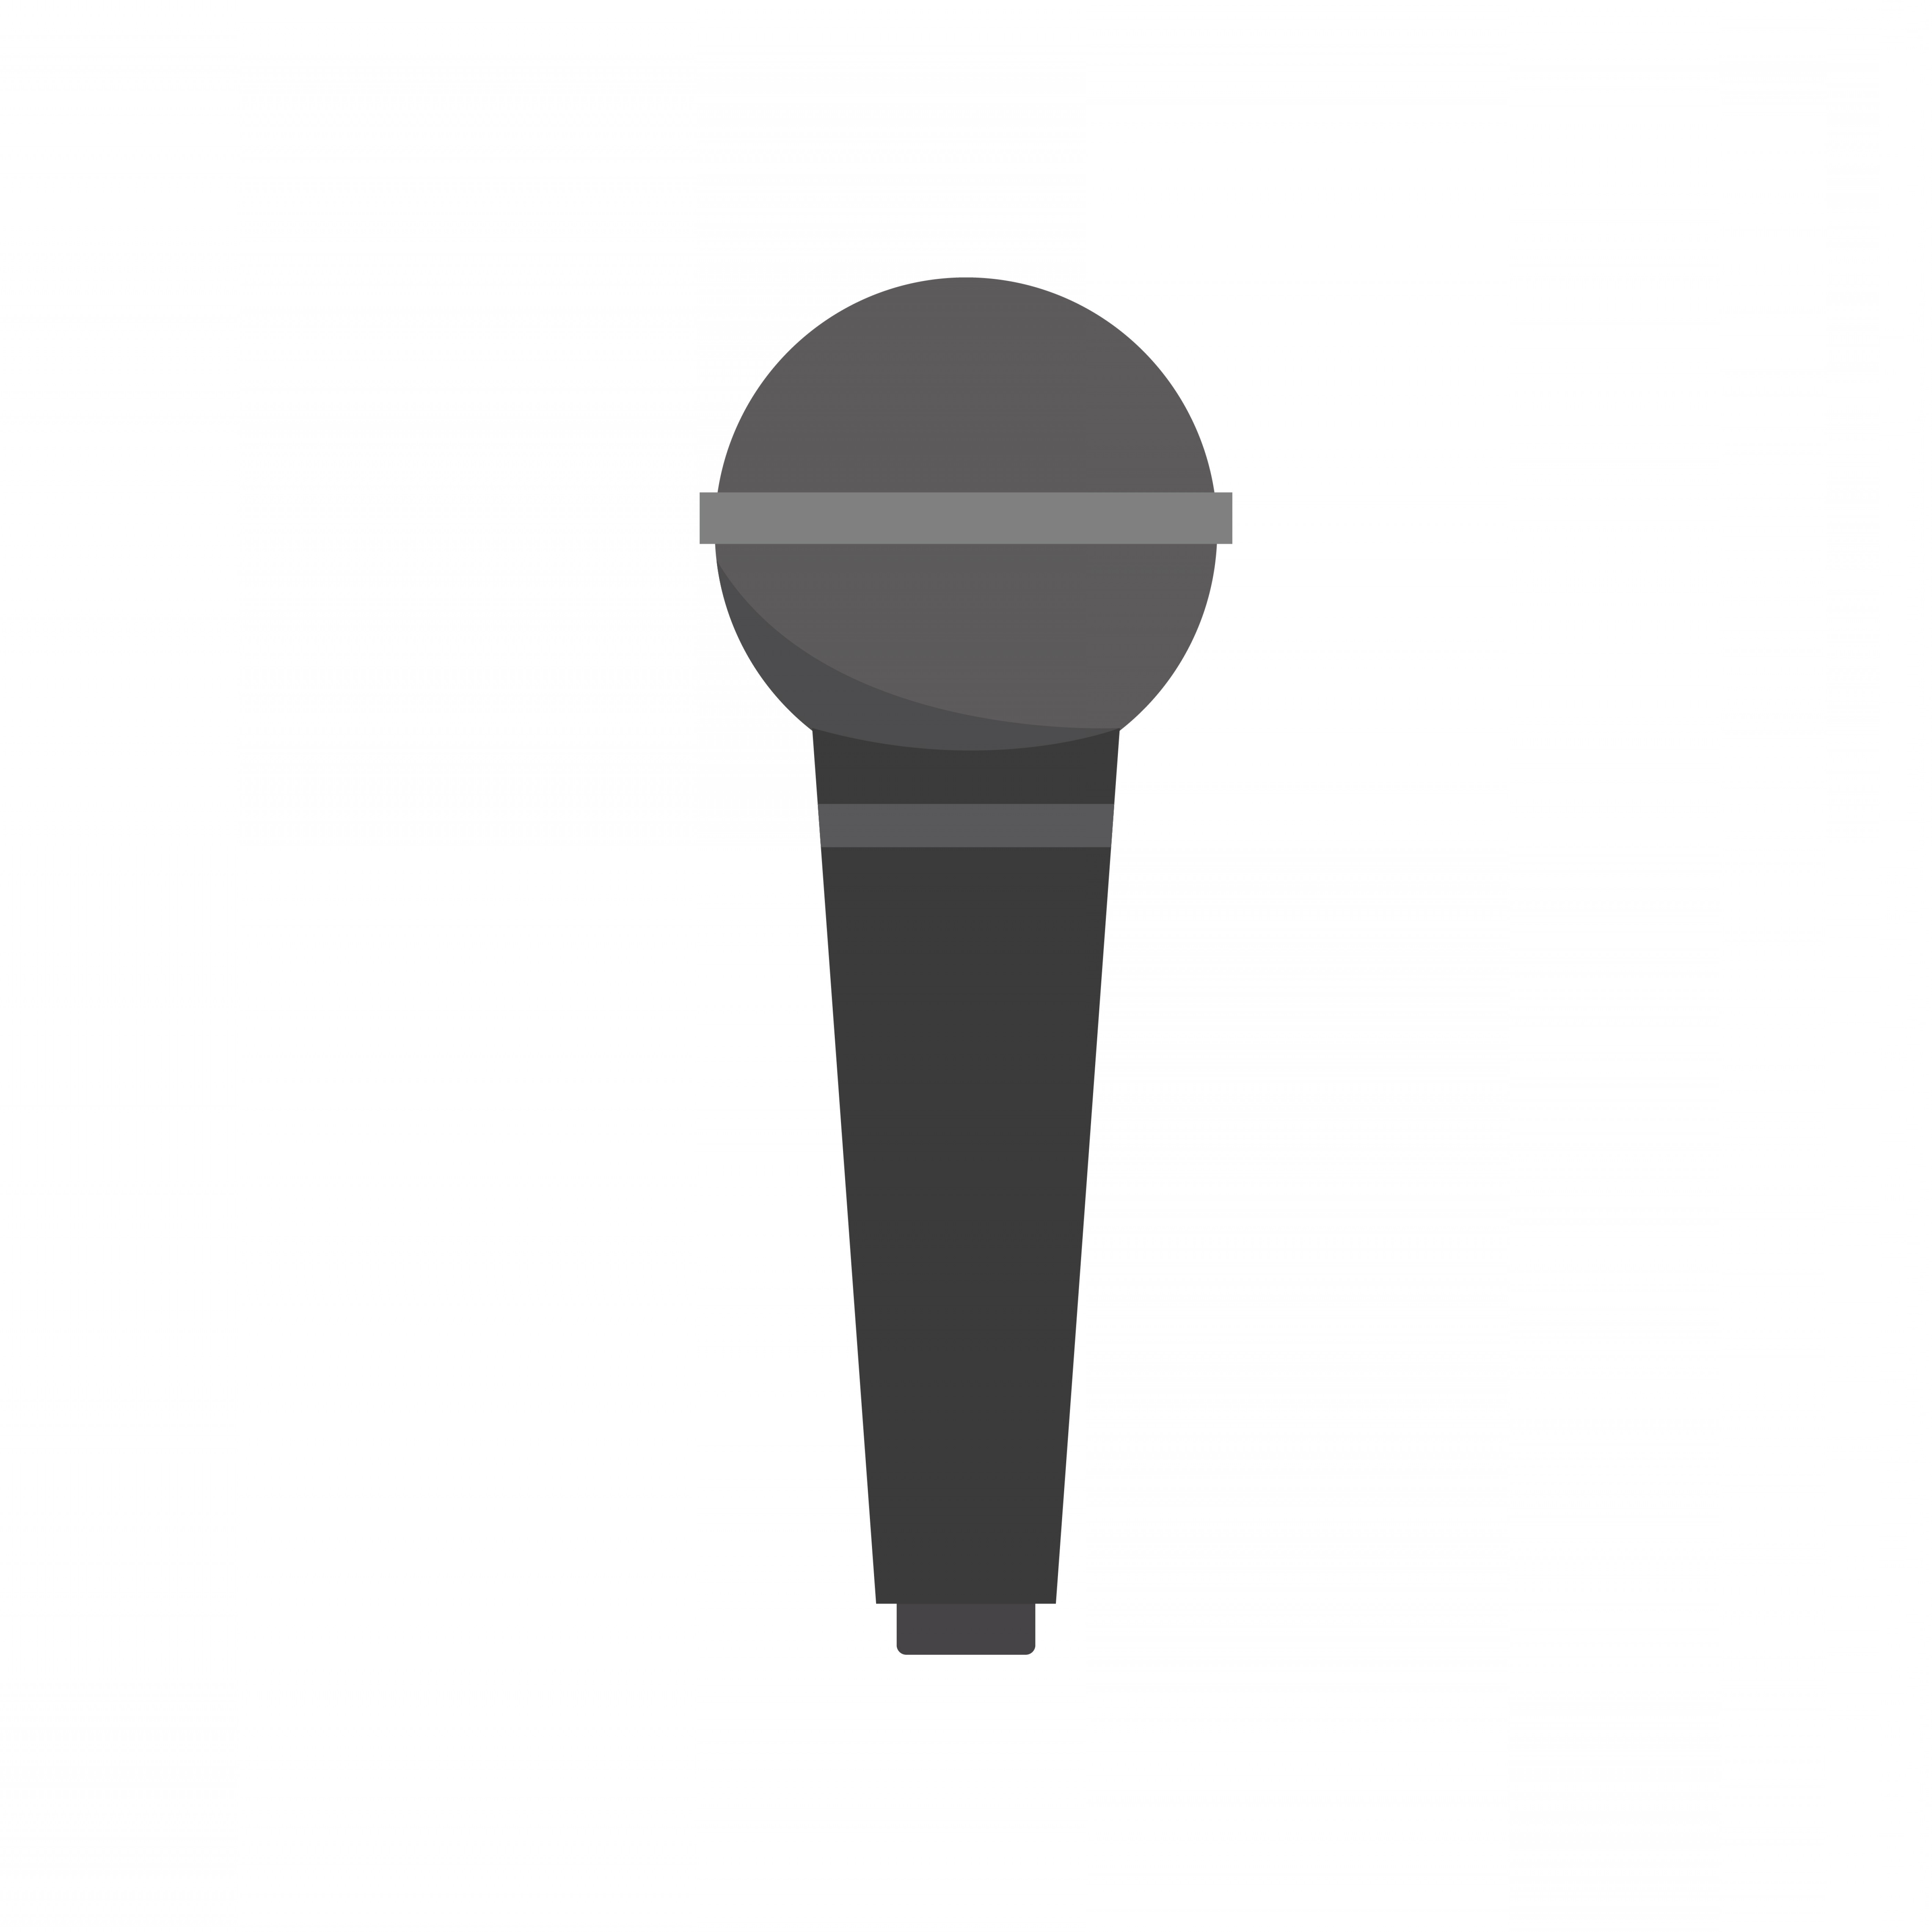 Mics Vector Designs: Black Microphone Isolated Graphic Illustration